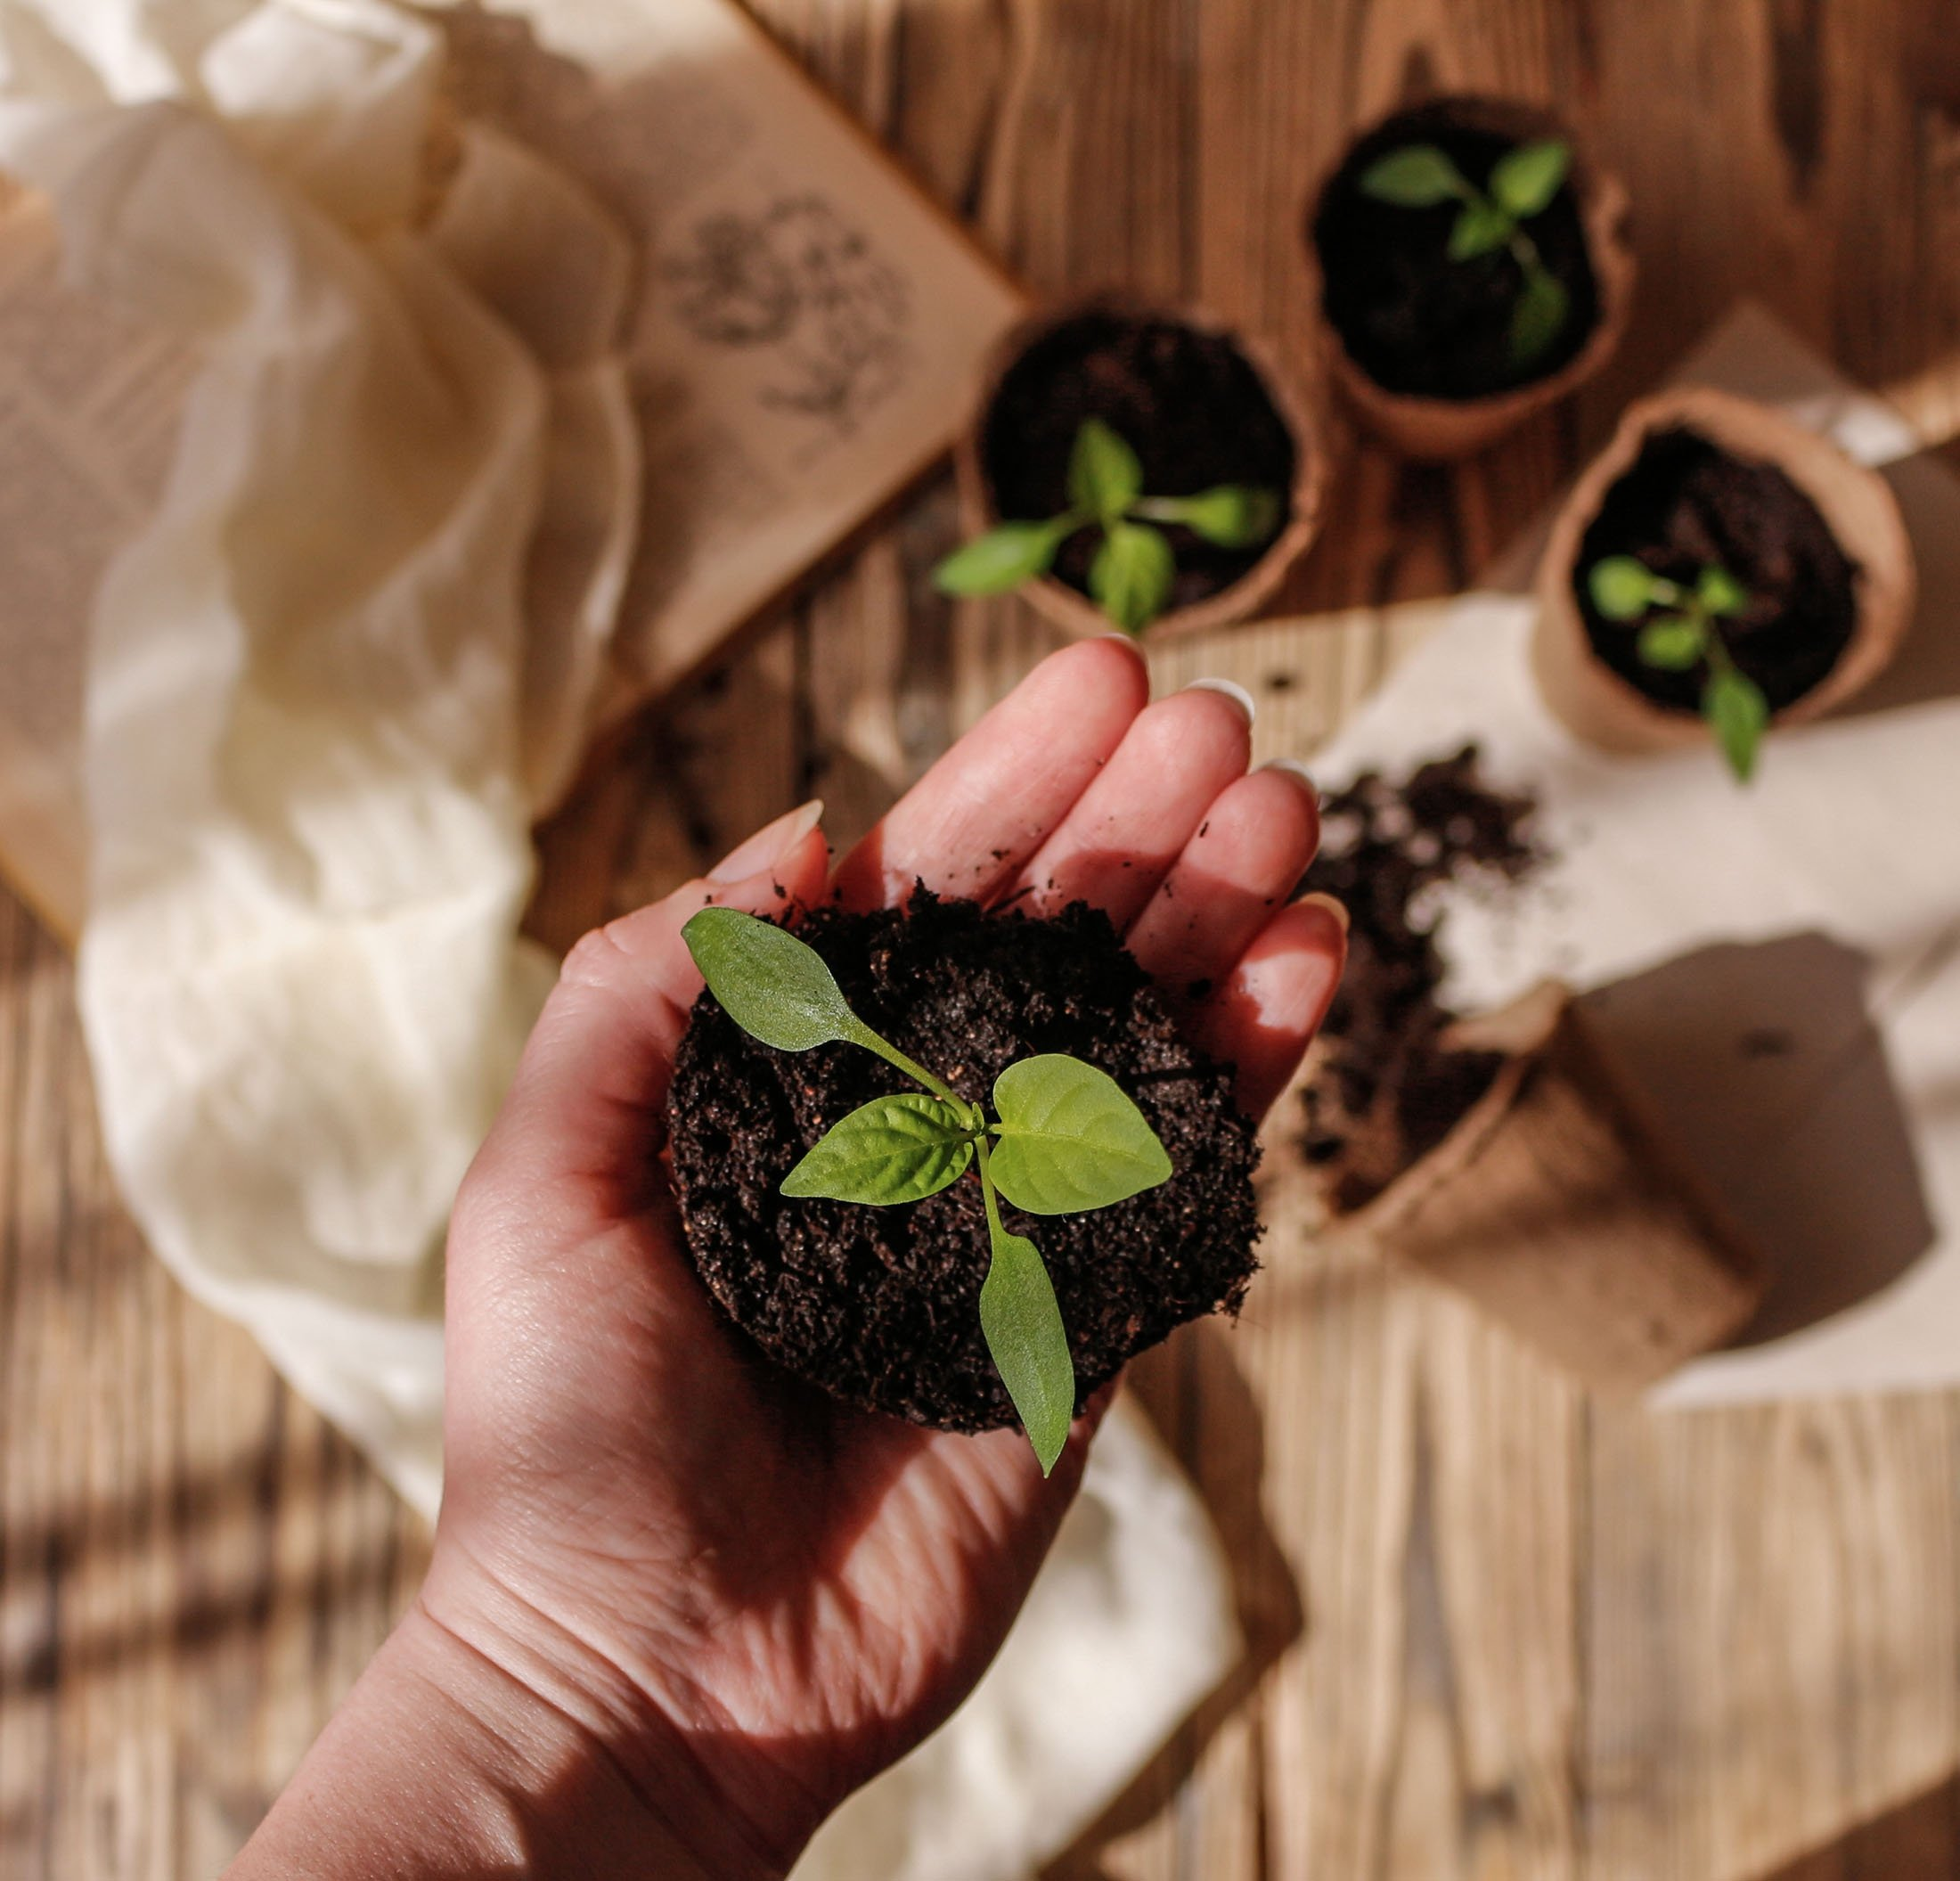 Planting trees and composting are some of the ways to help Earth heal. (Shutterstock Photo)